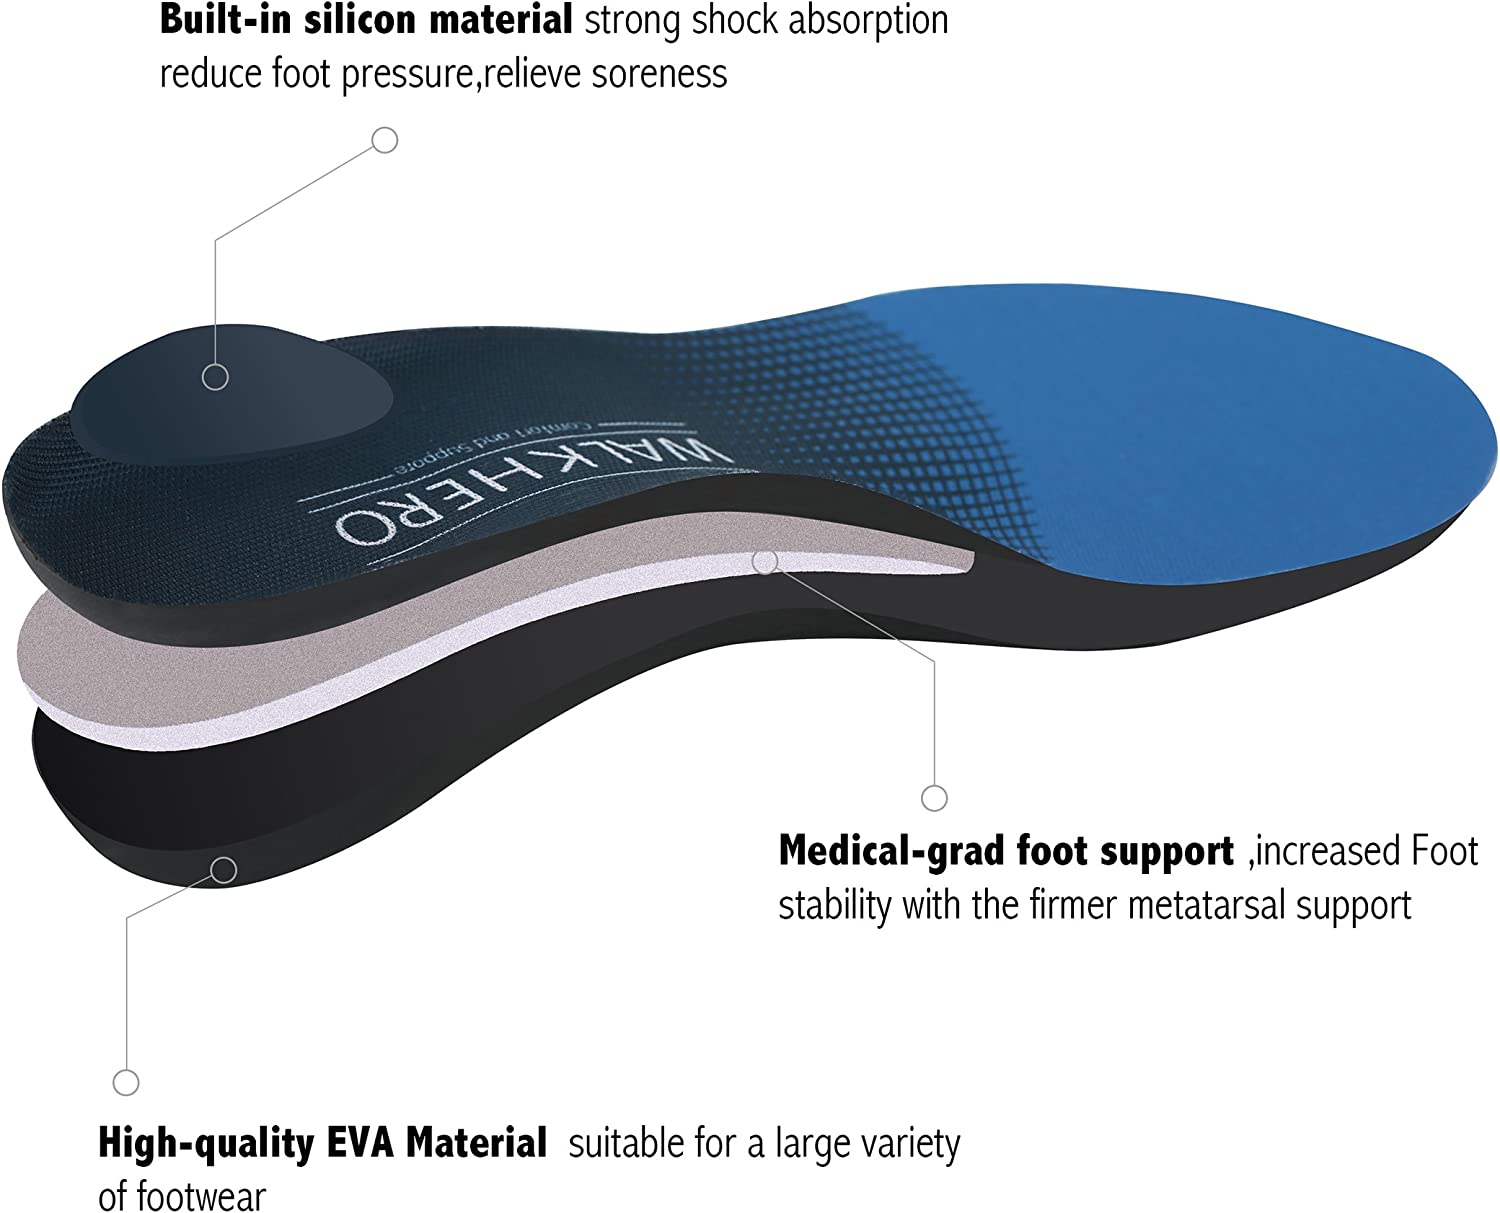 Plantar Fasciitis Feet Insoles Arch Supports Orthotics Inserts Relieve Flat Feet, High Arch, Foot Pain: Shoes